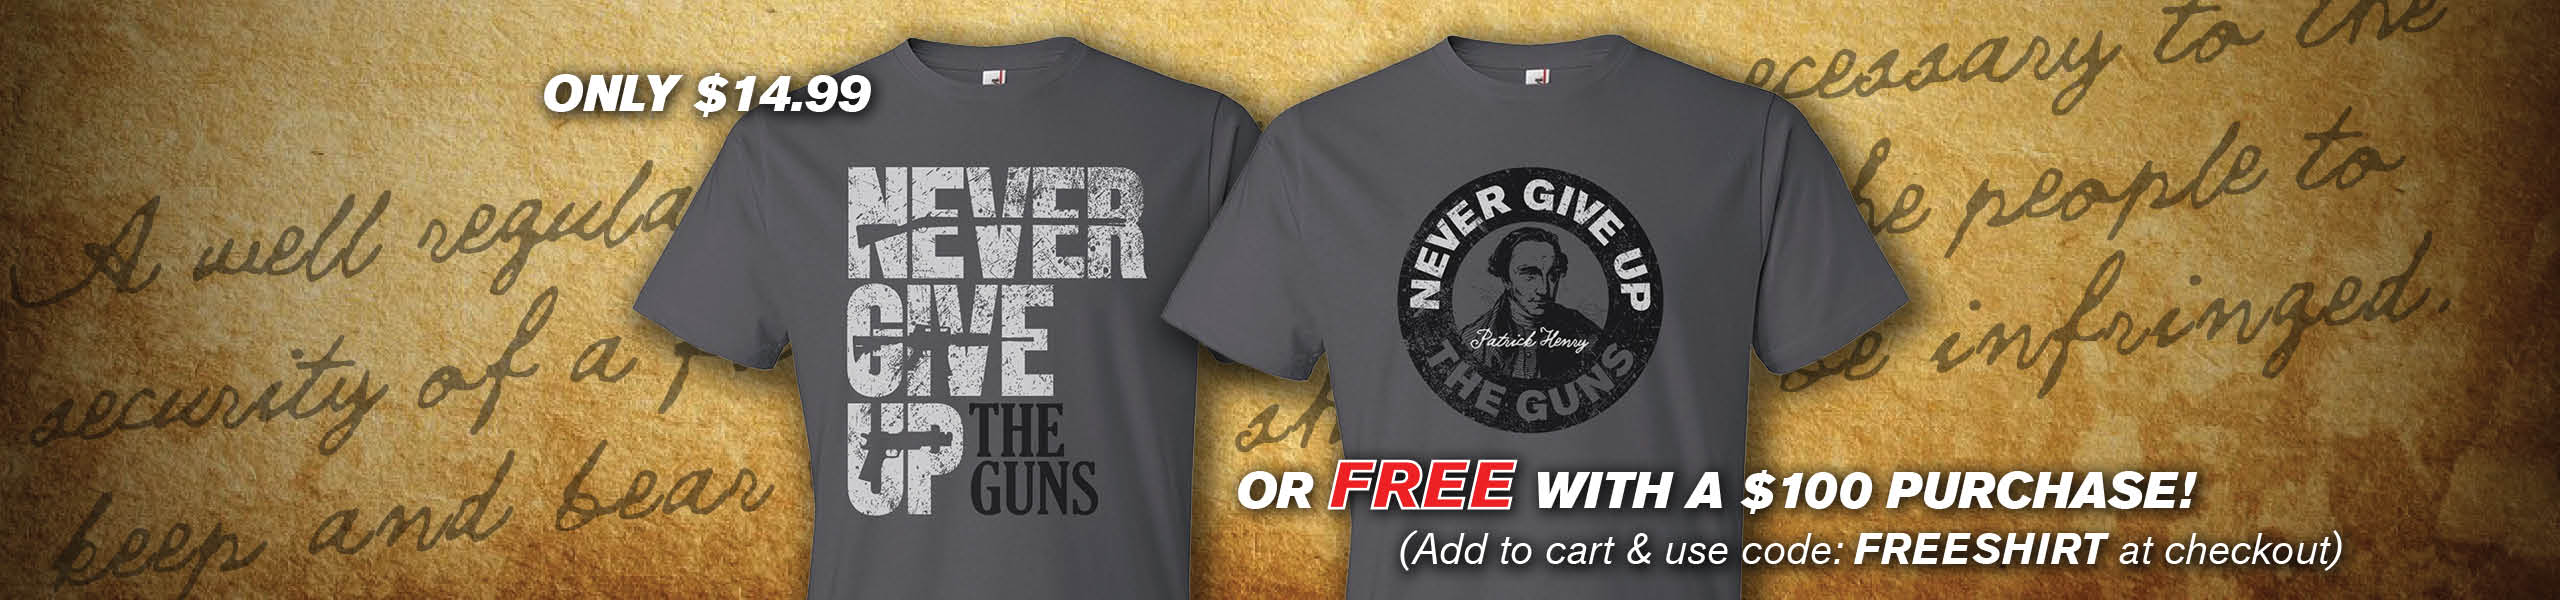 Never Give Up The Guns Tee - Second Amendment Gun Rights T-Shirts